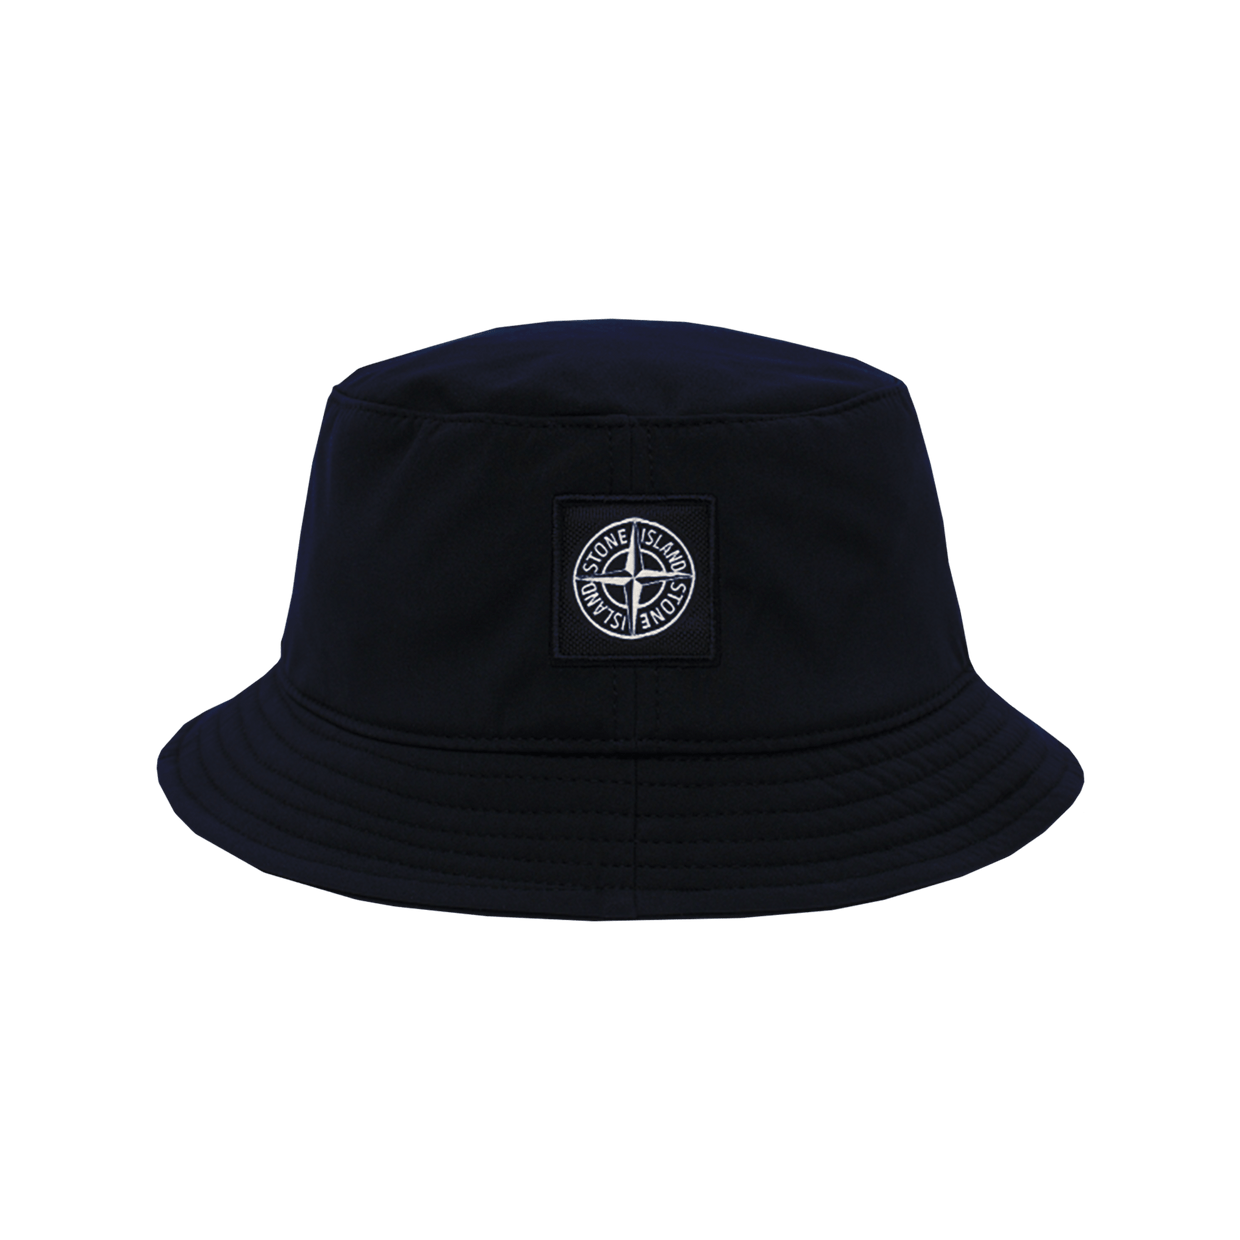 Bucket Hat - Blue Navy